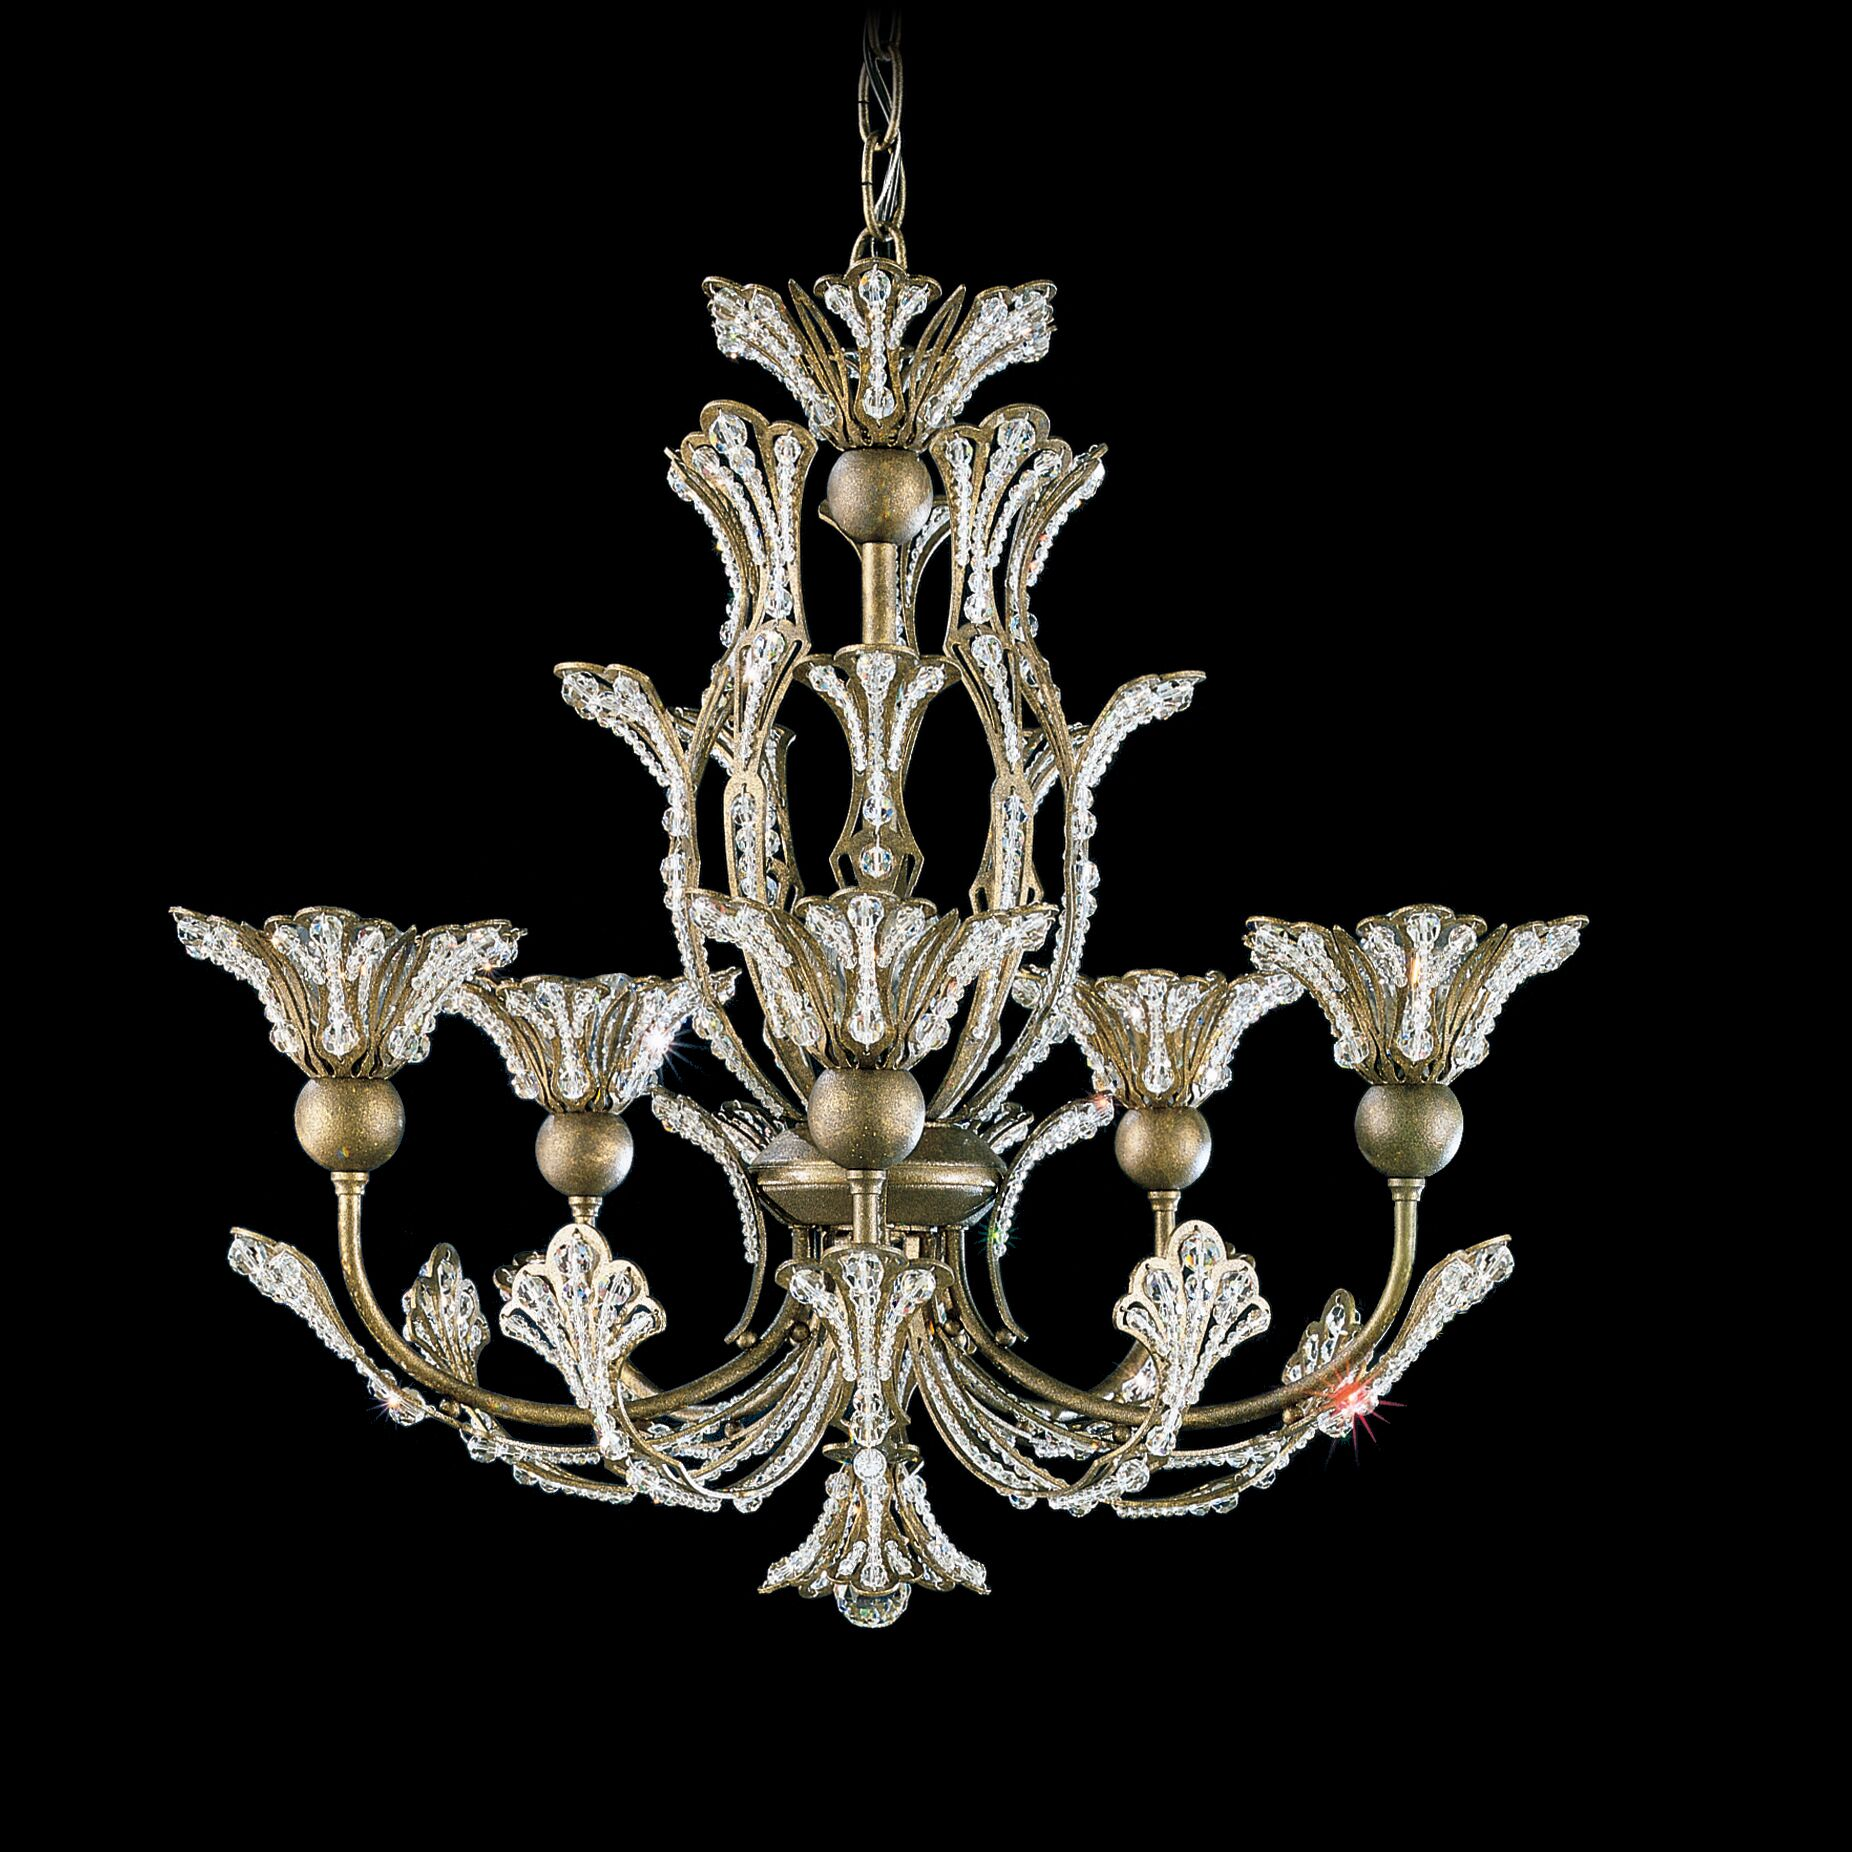 Rivendell 5-Light Chandelier Finish: Etruscan Gold, Crystal Color: Strass Clear